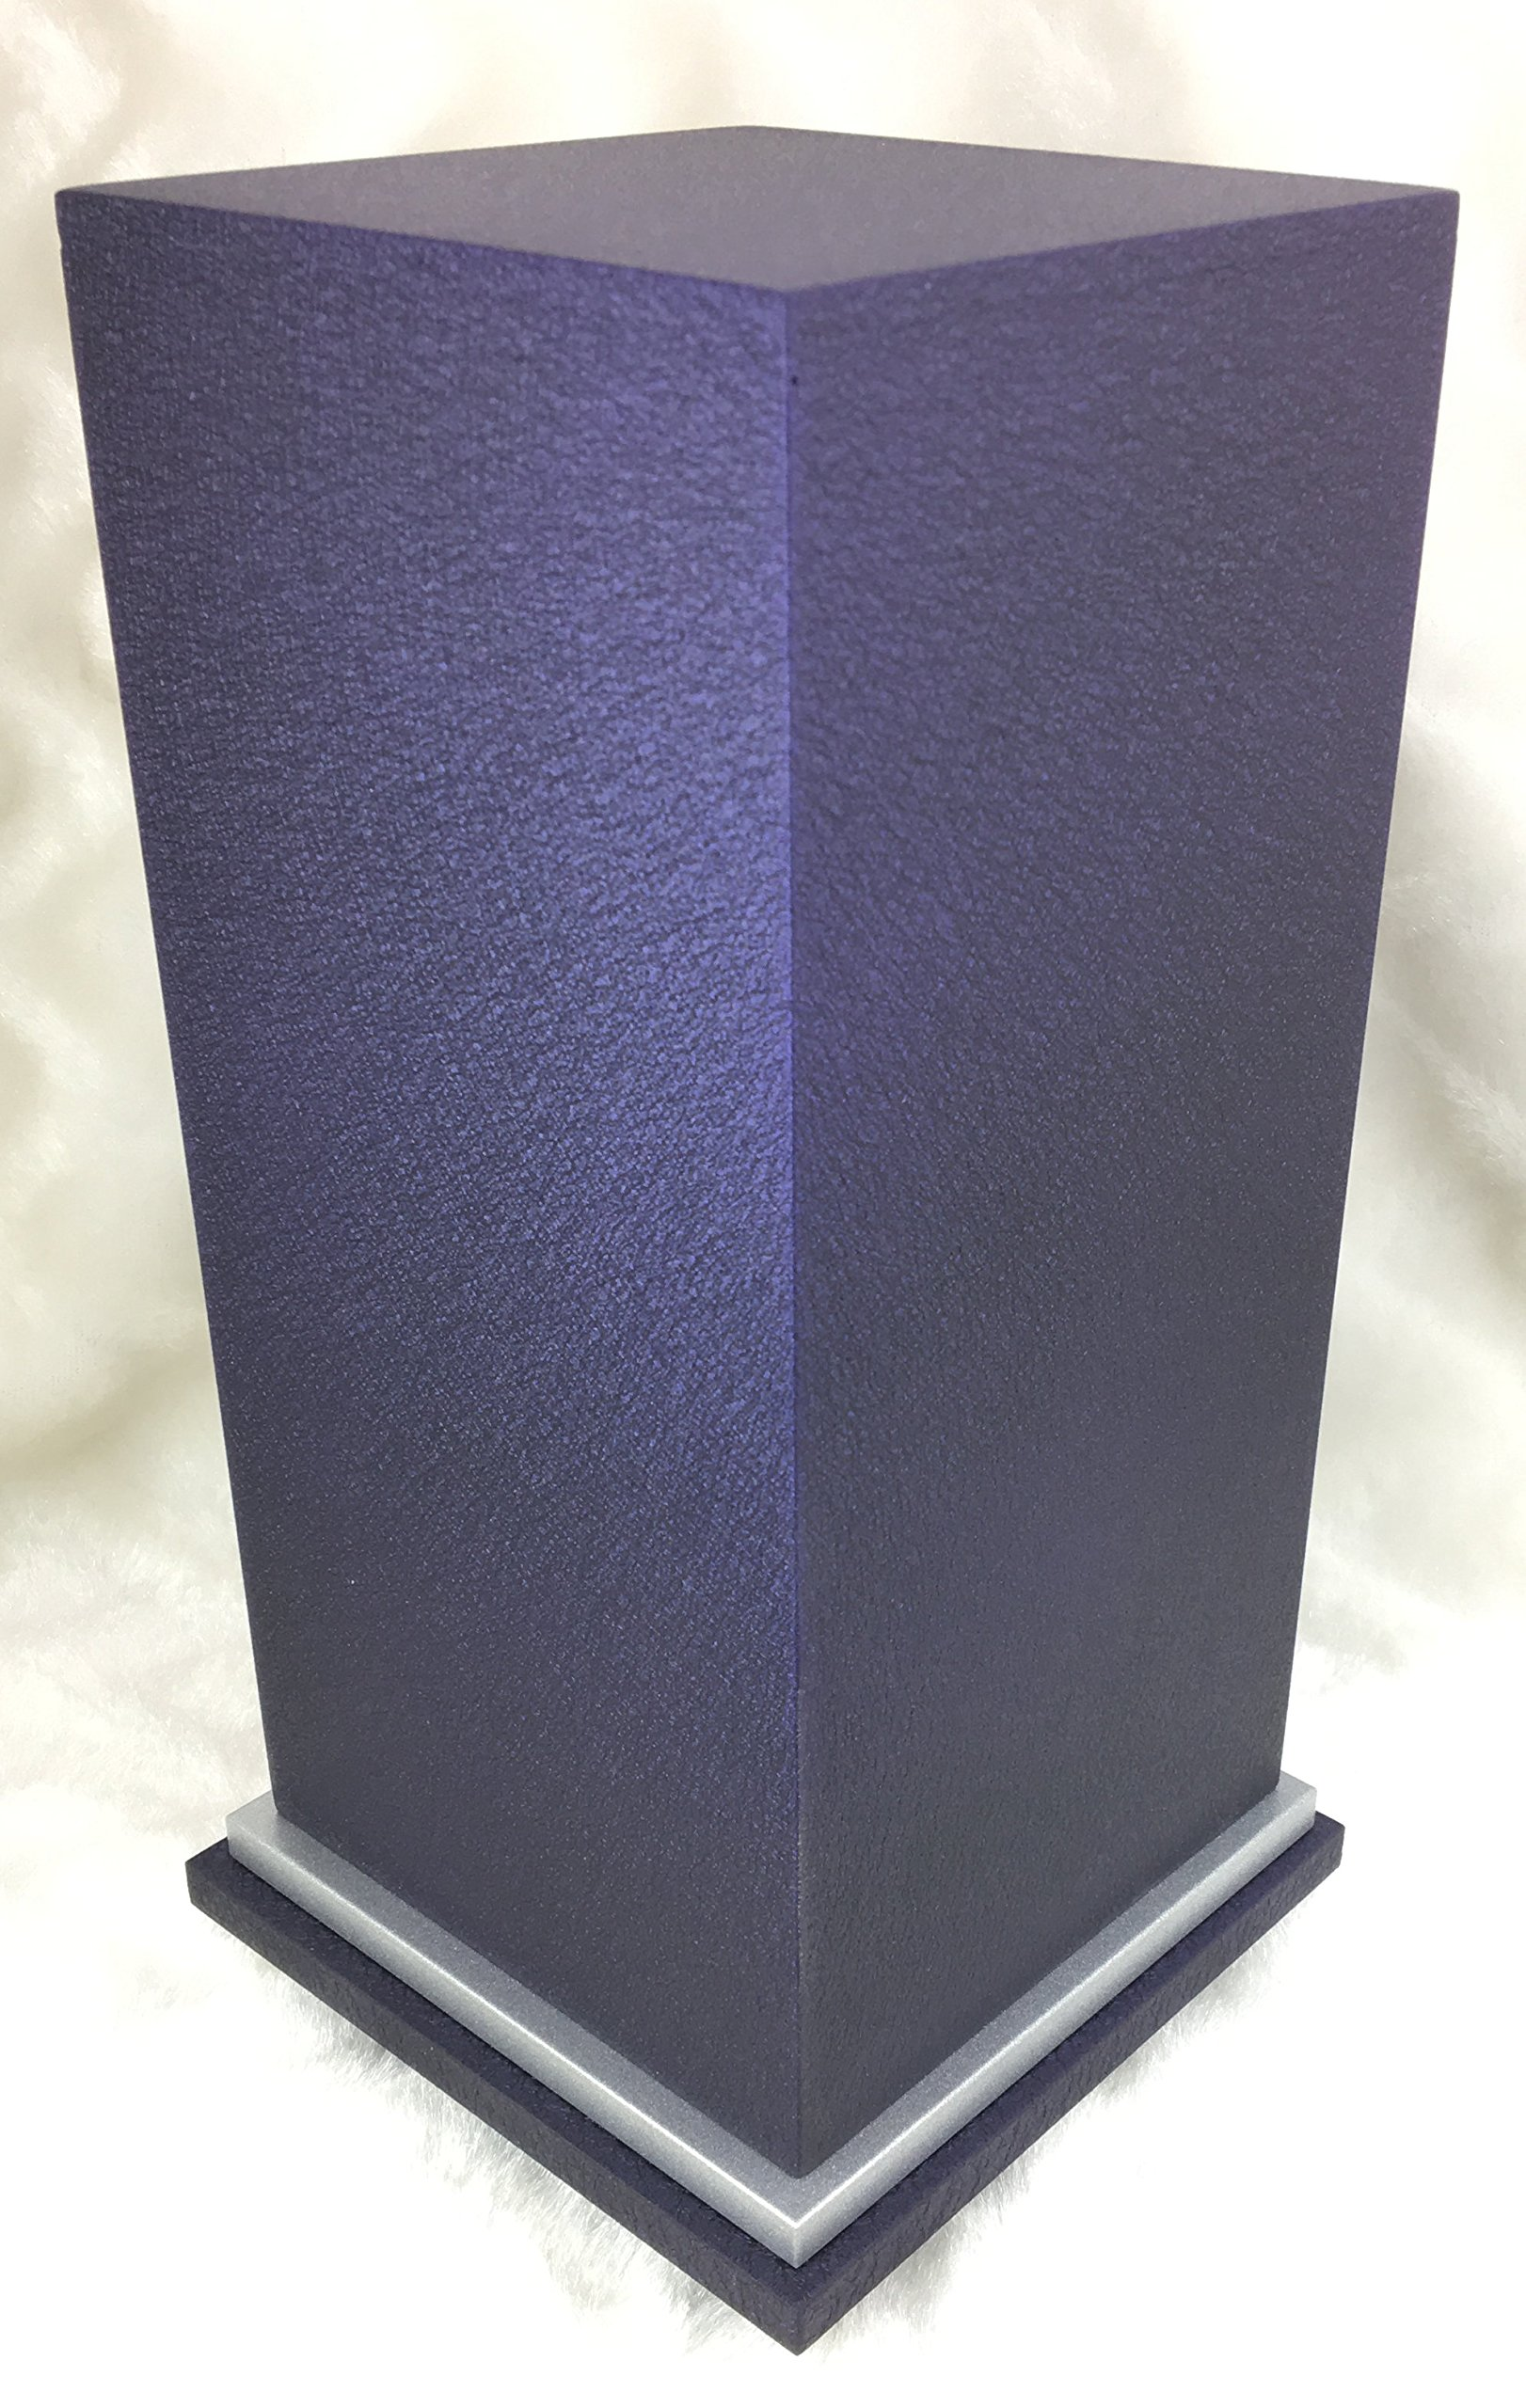 PERSONALIZED Engraved Butterfly Cremation Urn for Human Ashes-Made in America-Handcrafted in the USA by Amaranthine Urns (Adult Funeral Urn up to 200 lbs living weight) Eaton SE- (Purple Velvet) by Amaranthine Urn Company (Image #3)